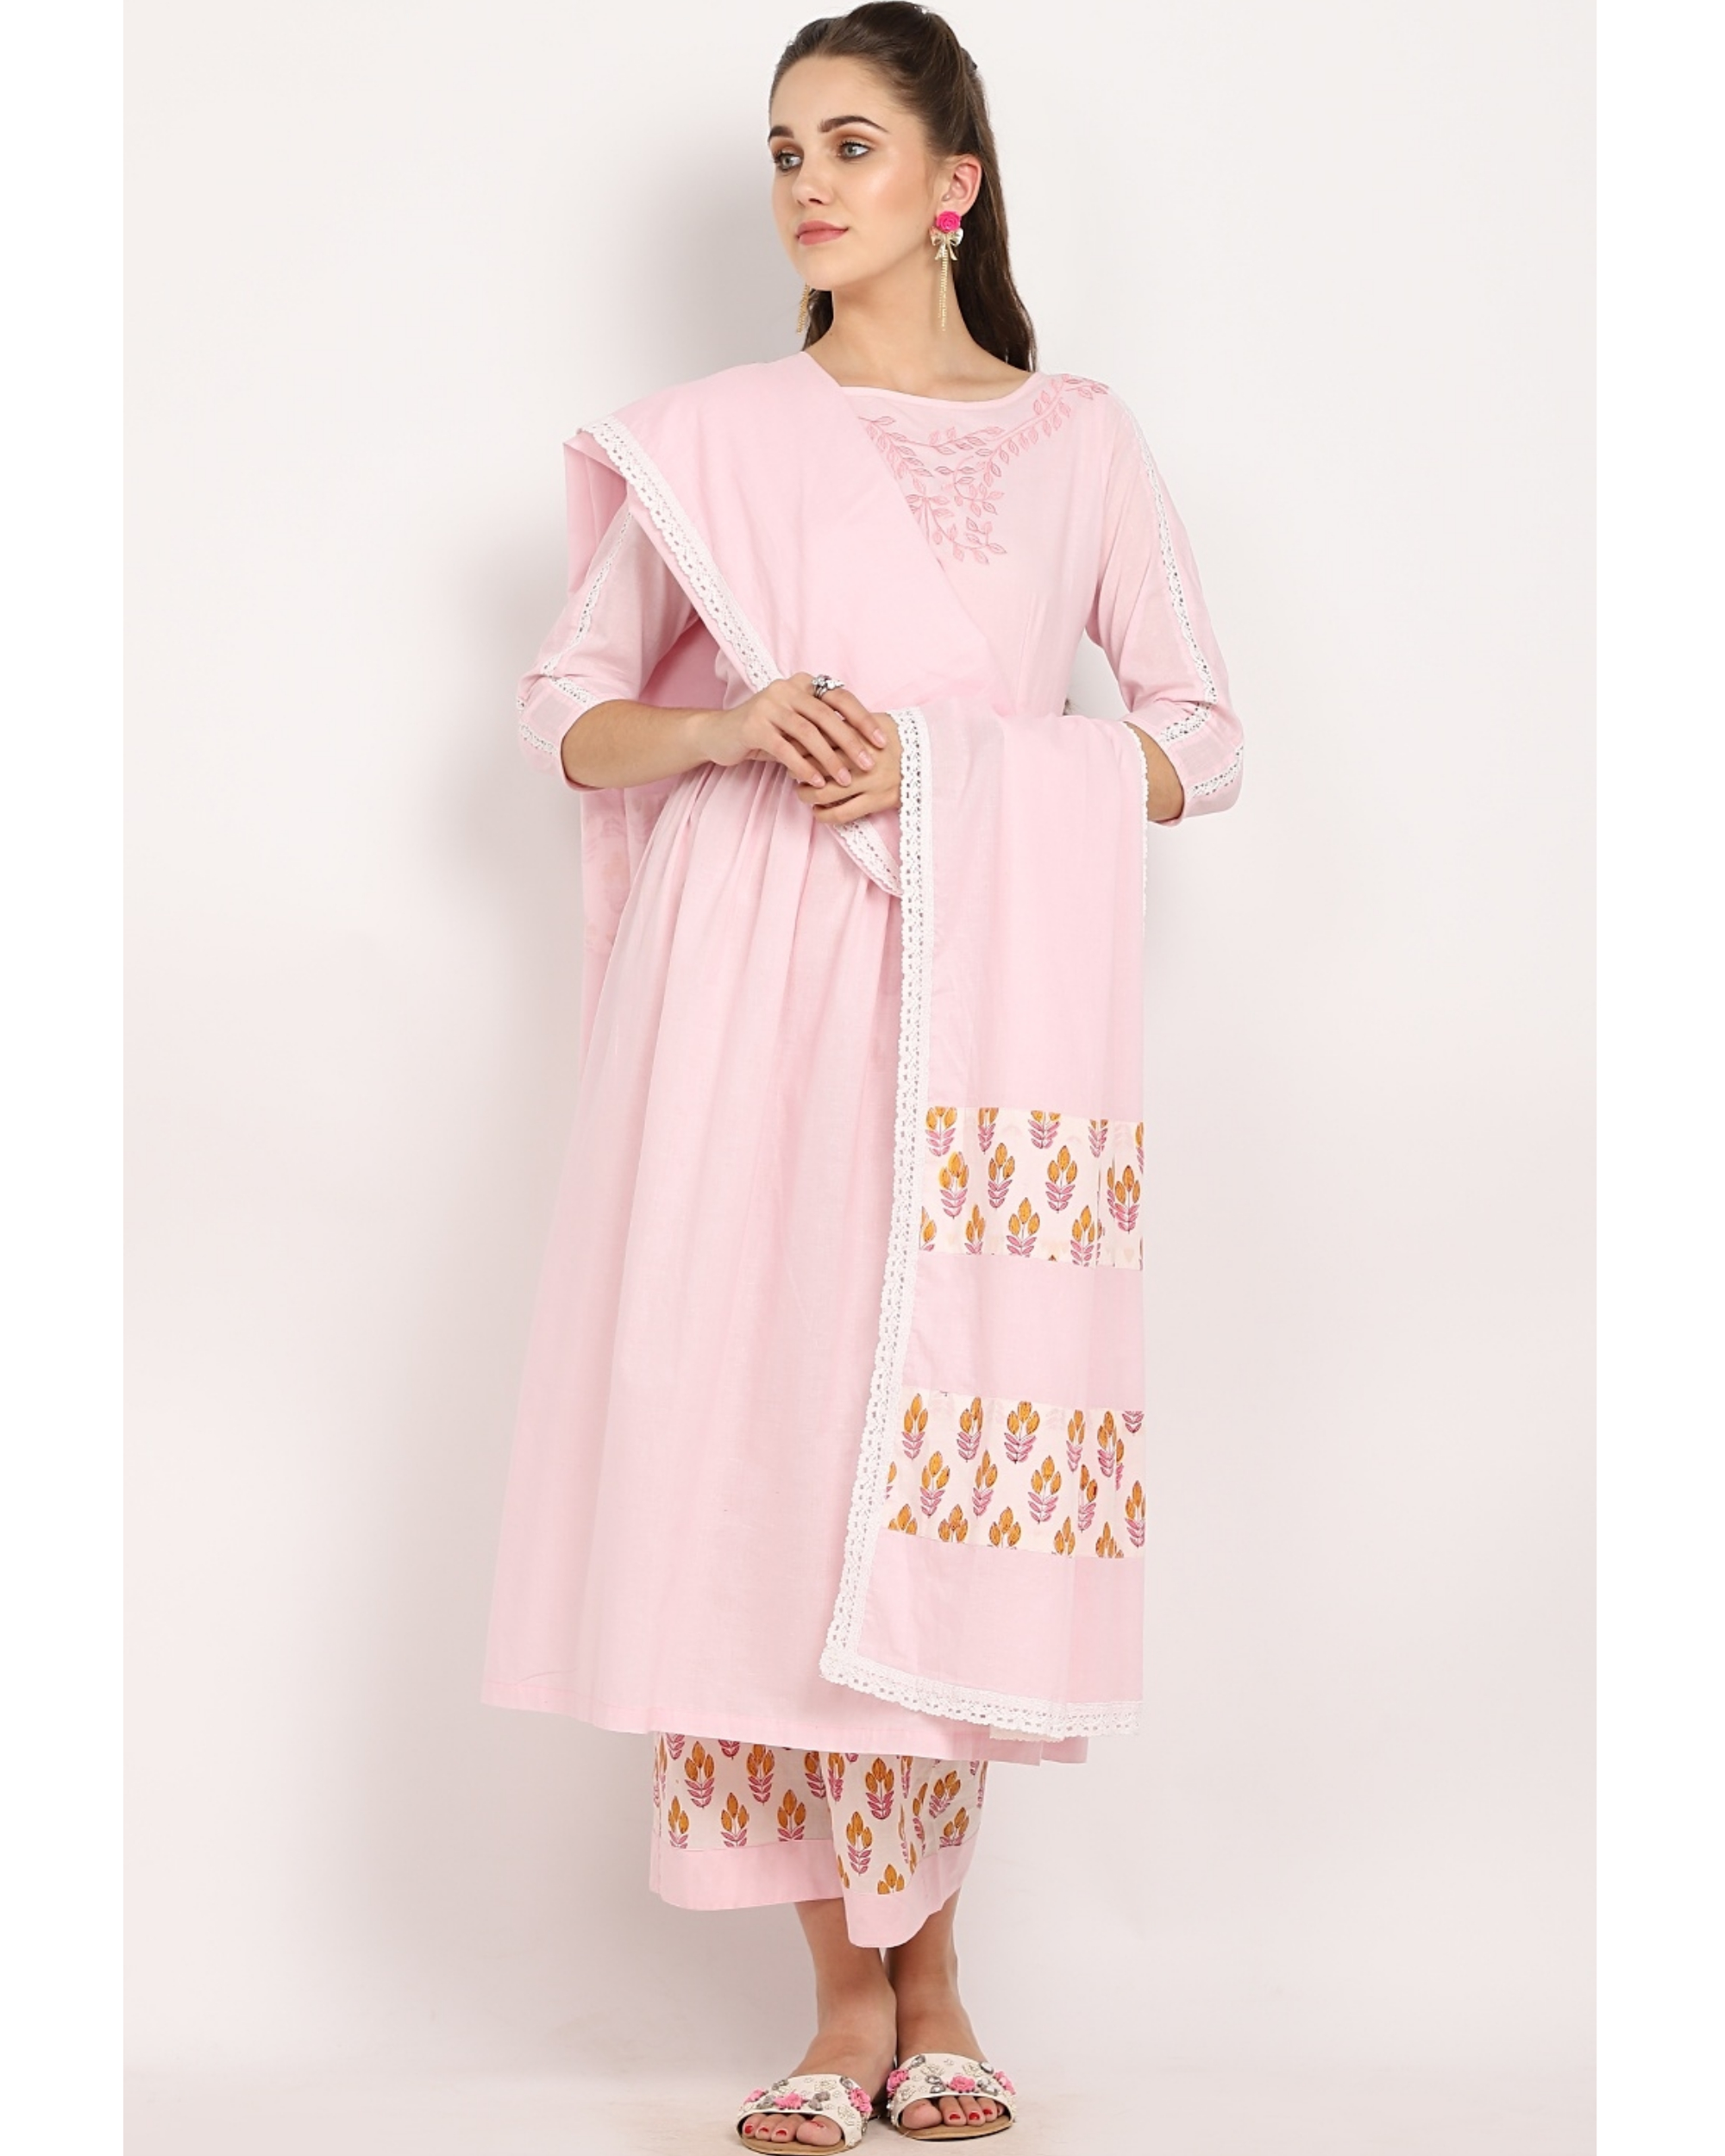 Blush pink printed suit set with crochet embroidered dupatta - set of three